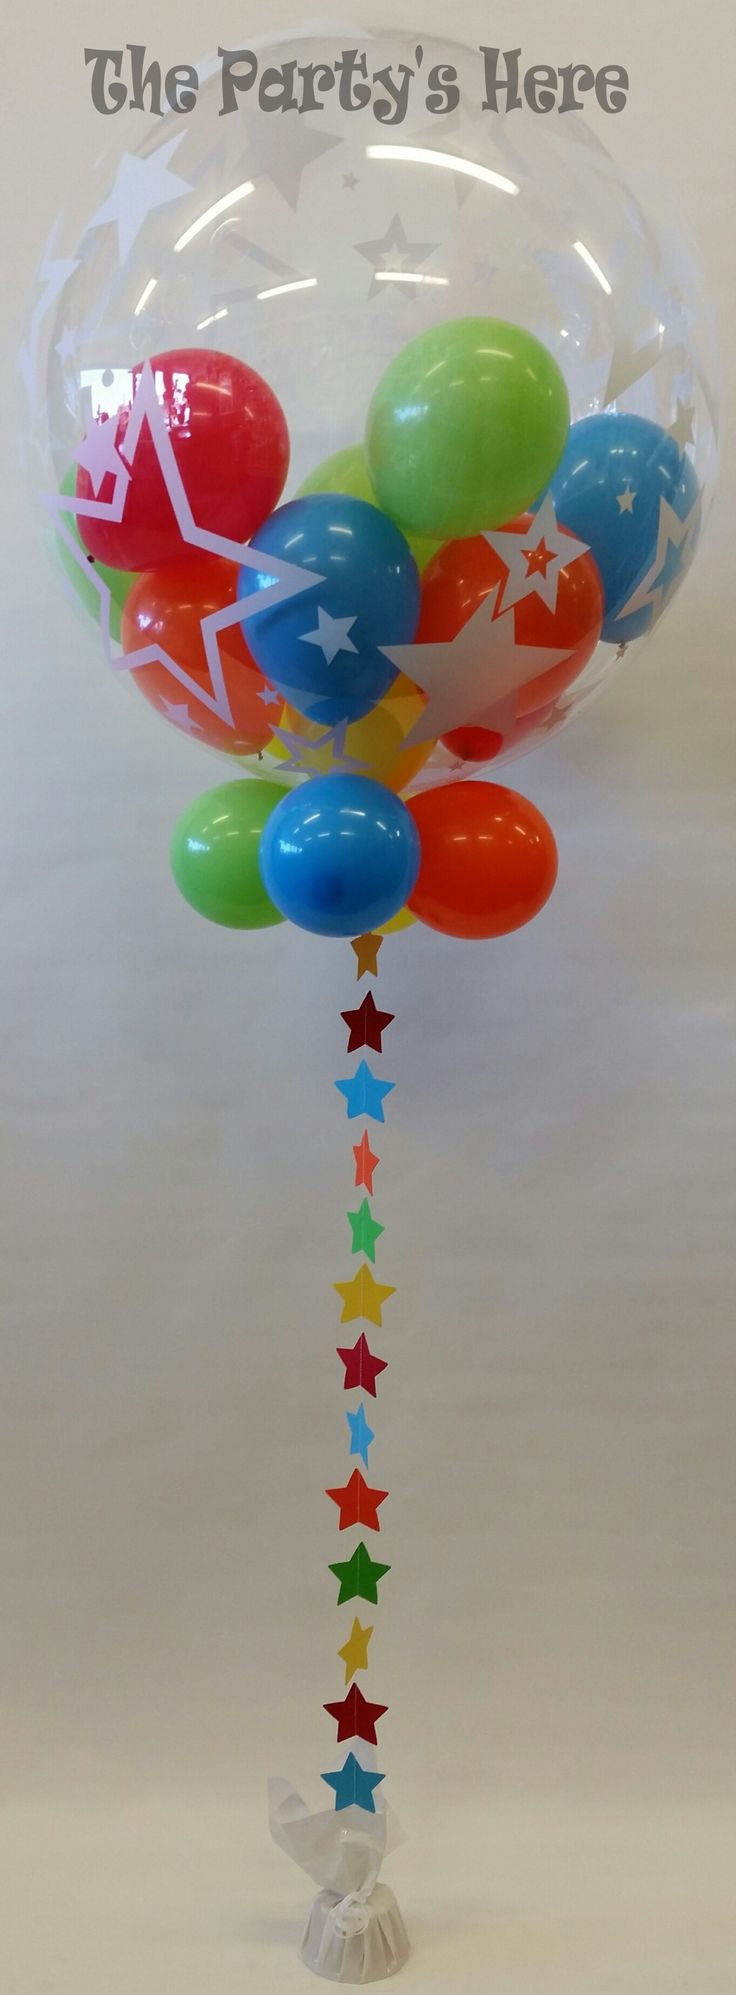 Star Print Bubble with matching custom made Garland. Love these colours!  www.thepartyshere.com.au   #balloons #star #bubbleballoon #qualatex #custommade #bespoke #thepartyshere #certifiedballoonartist